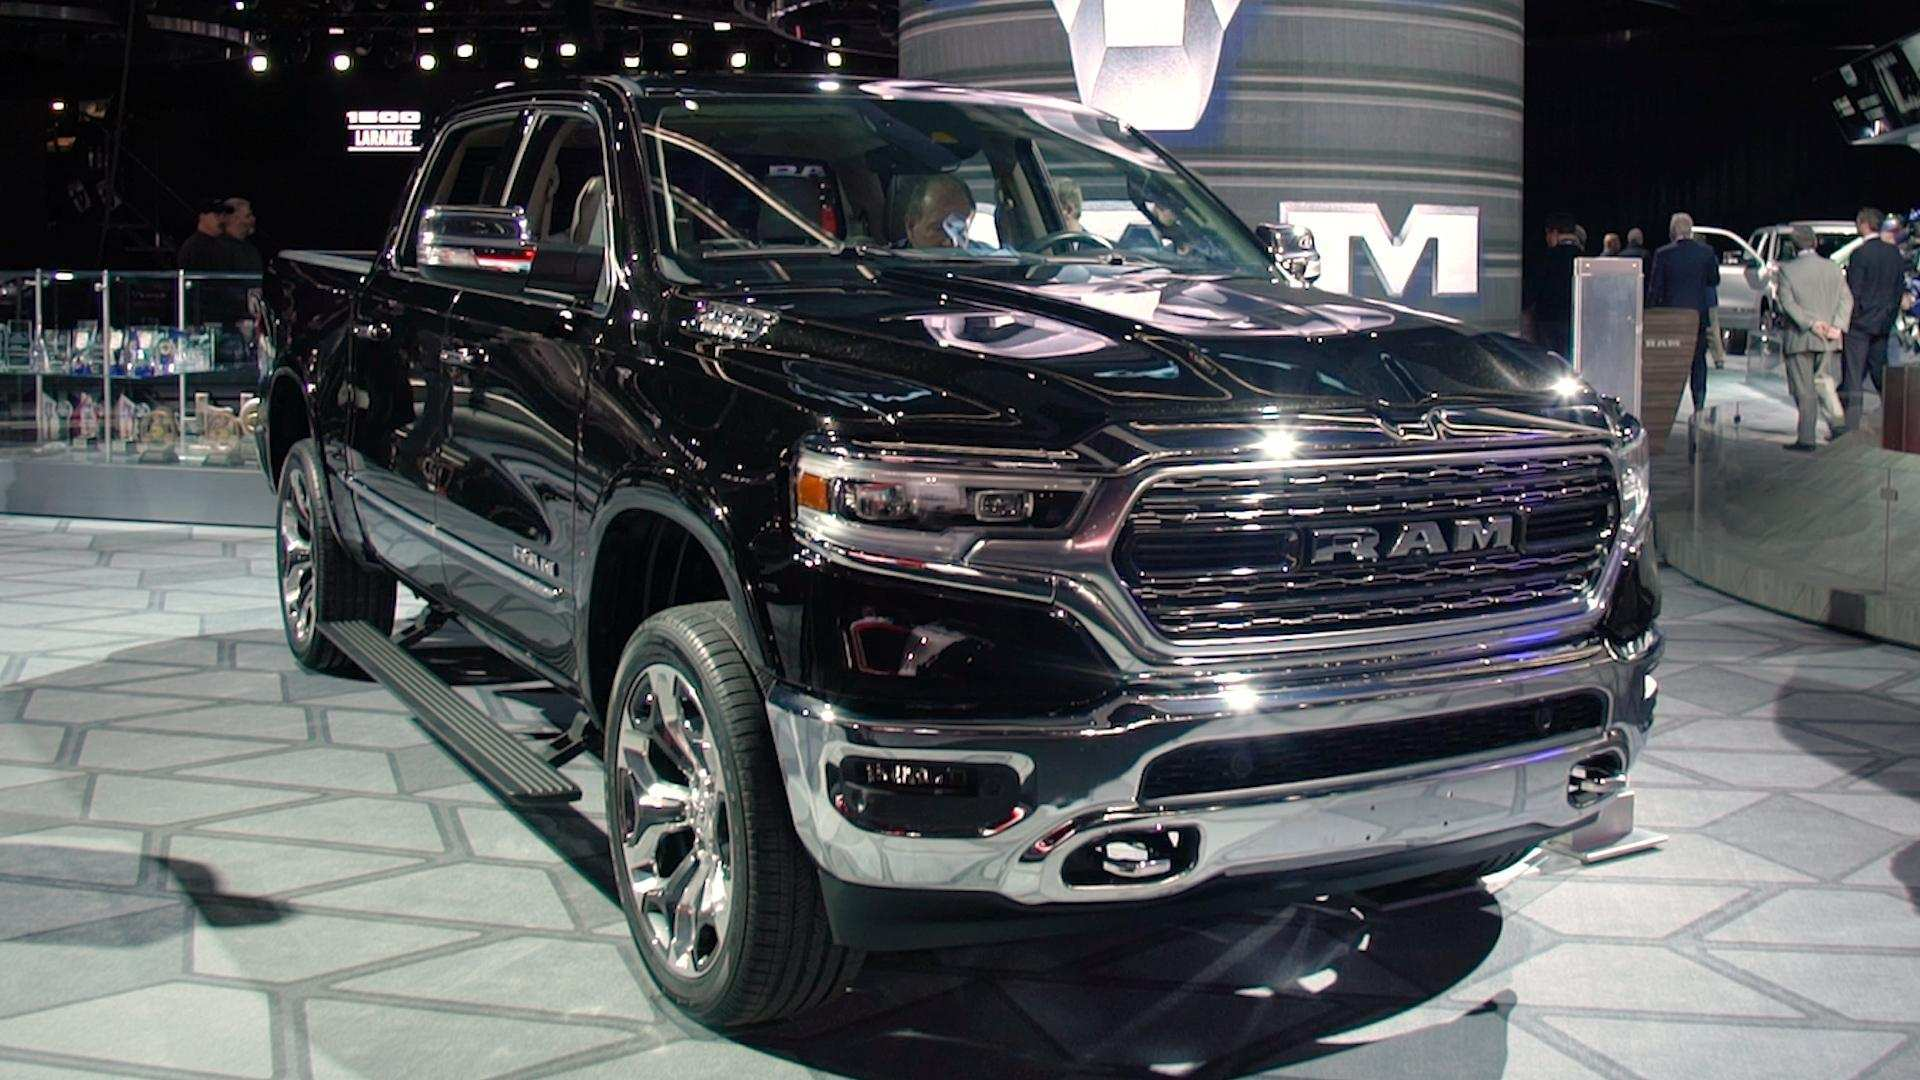 52 Gallery of 2019 Dodge Ram Body Style Concept for 2019 Dodge Ram Body Style